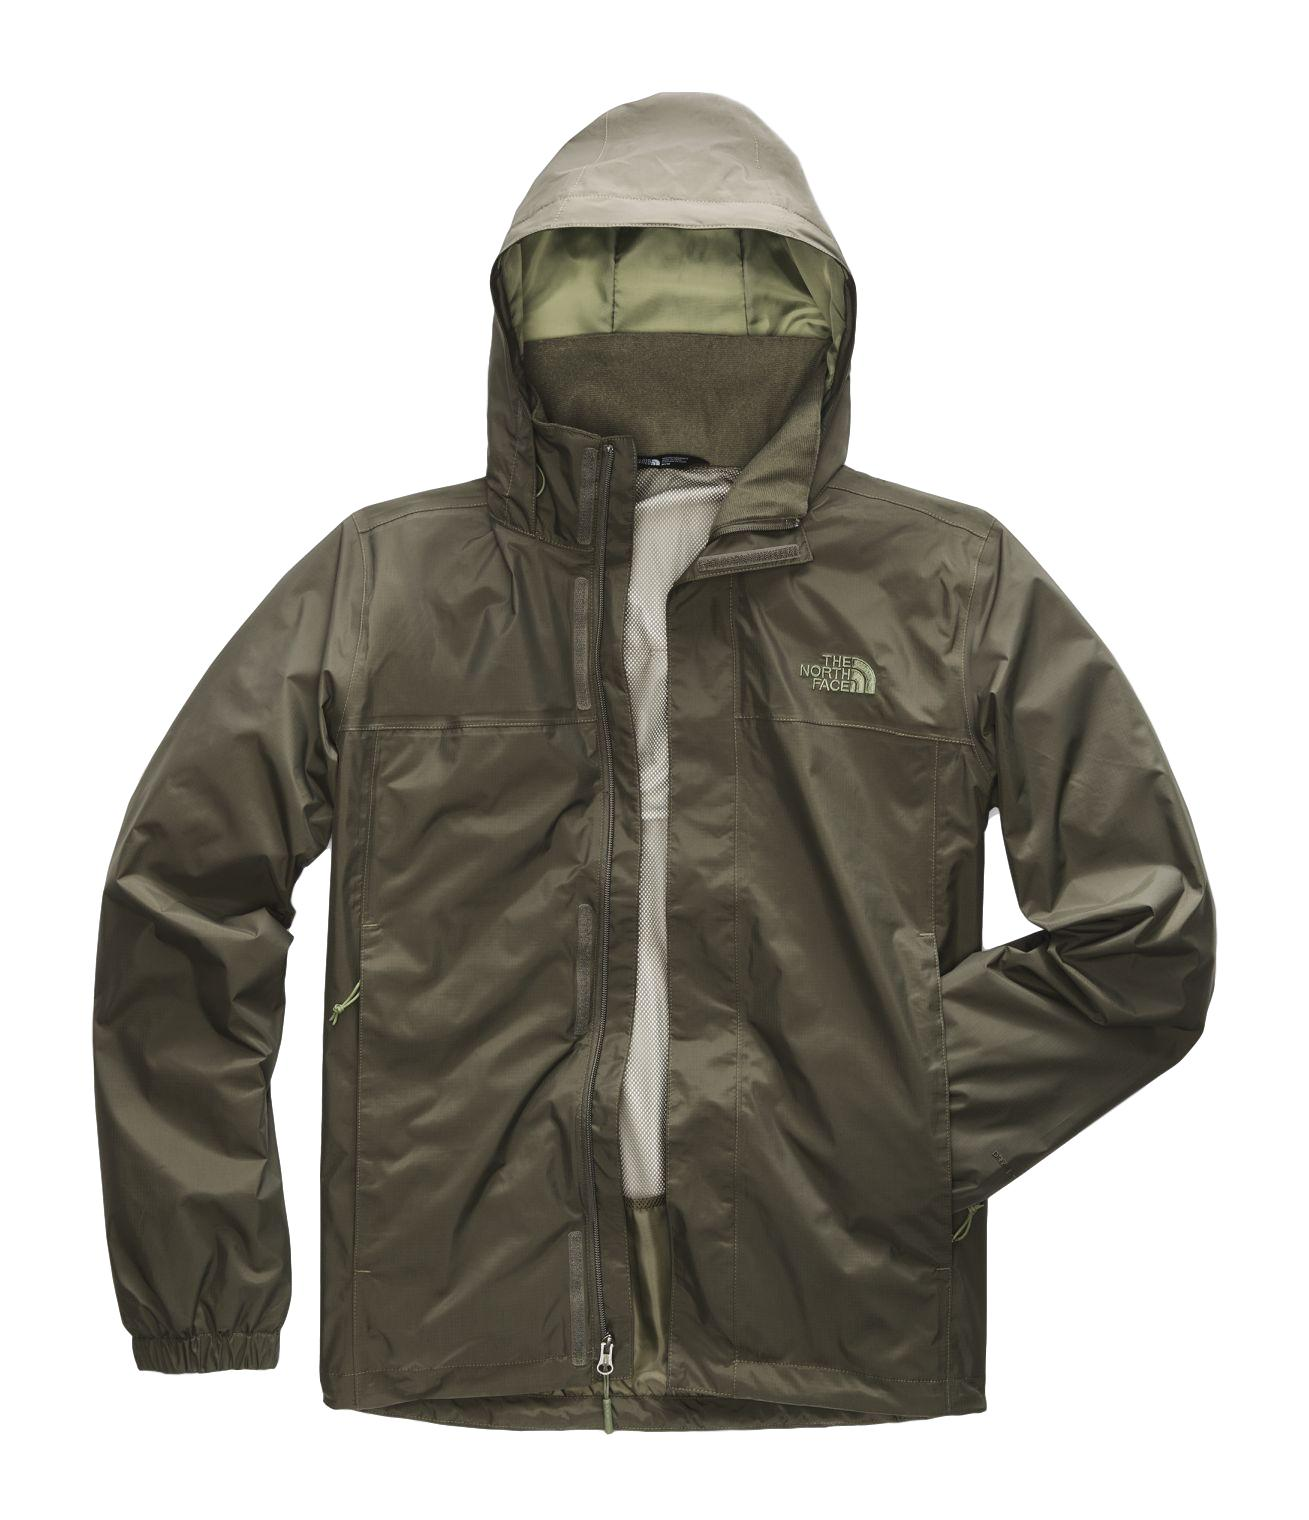 f7110eeb03b7 The North Face Resolve 2 Jacket - Men s - Gear Coop